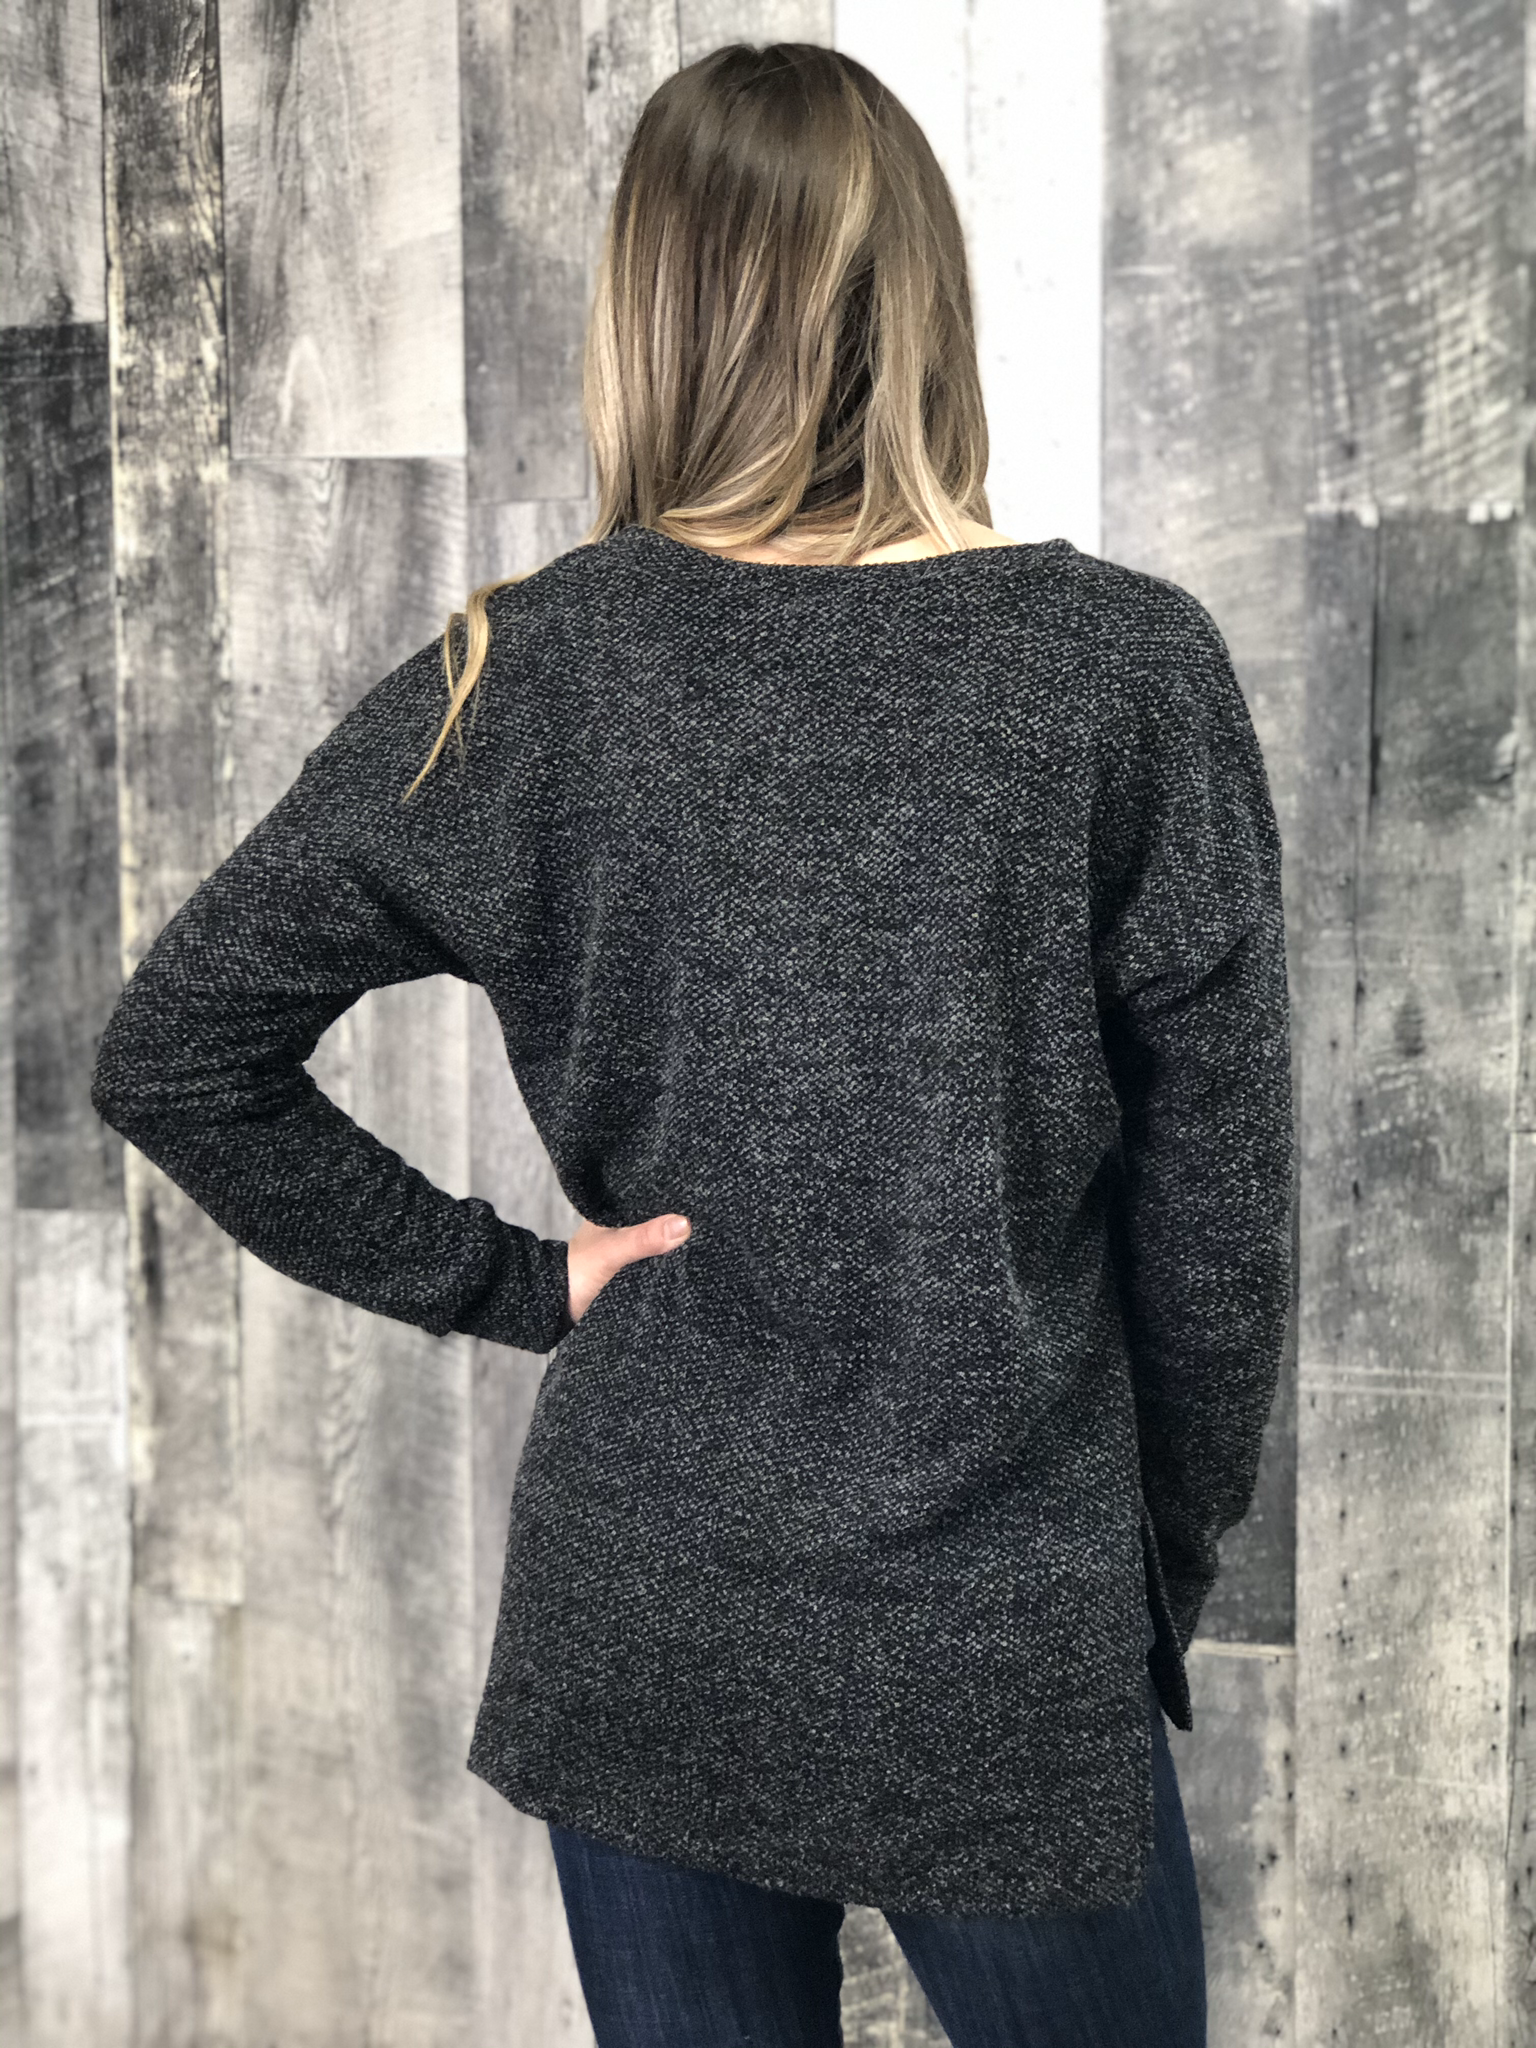 Tunic Heathered Top  - Black